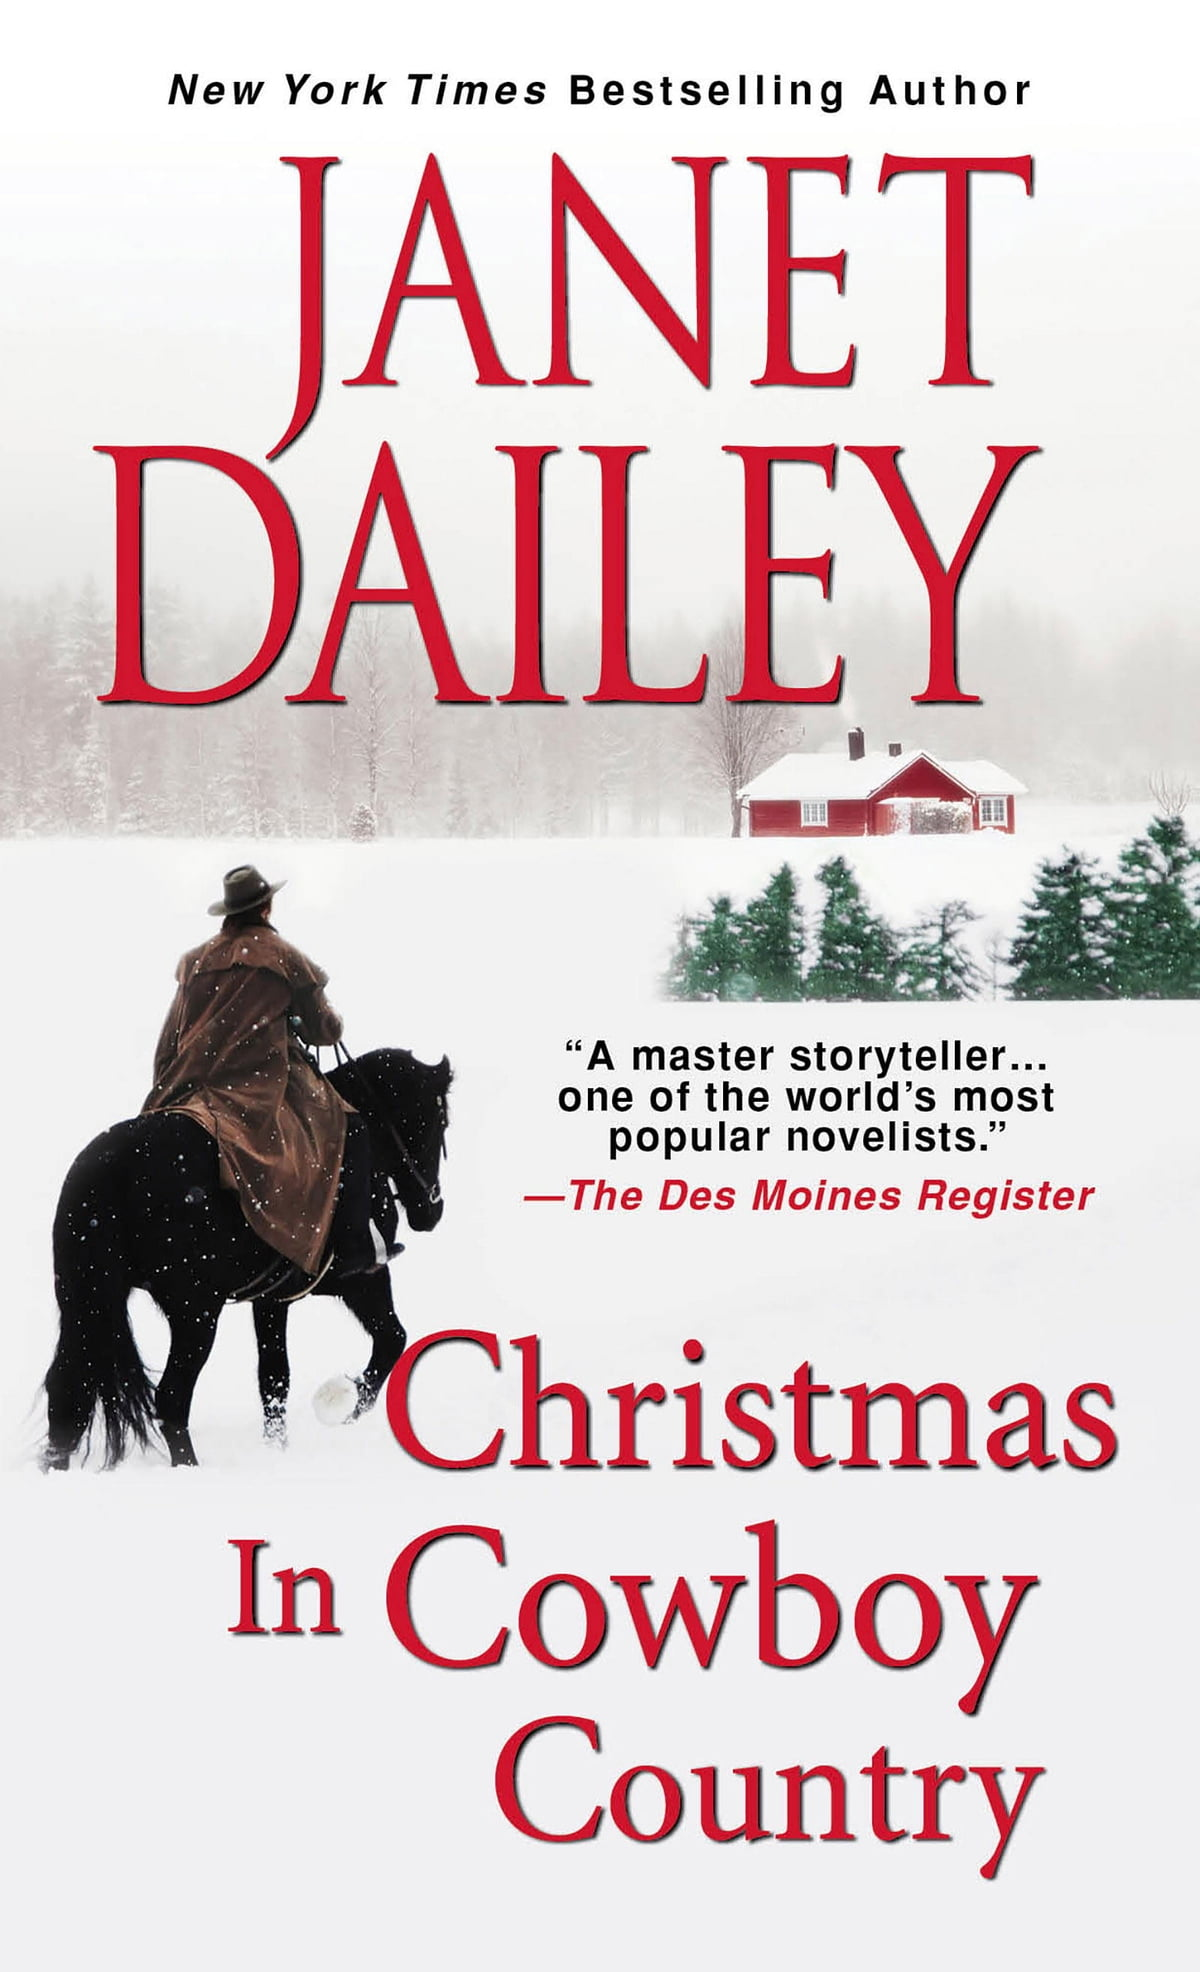 Ebook deals see daily deals bargains and books on sale christmas in cowboy country ebook by janet dailey fandeluxe PDF